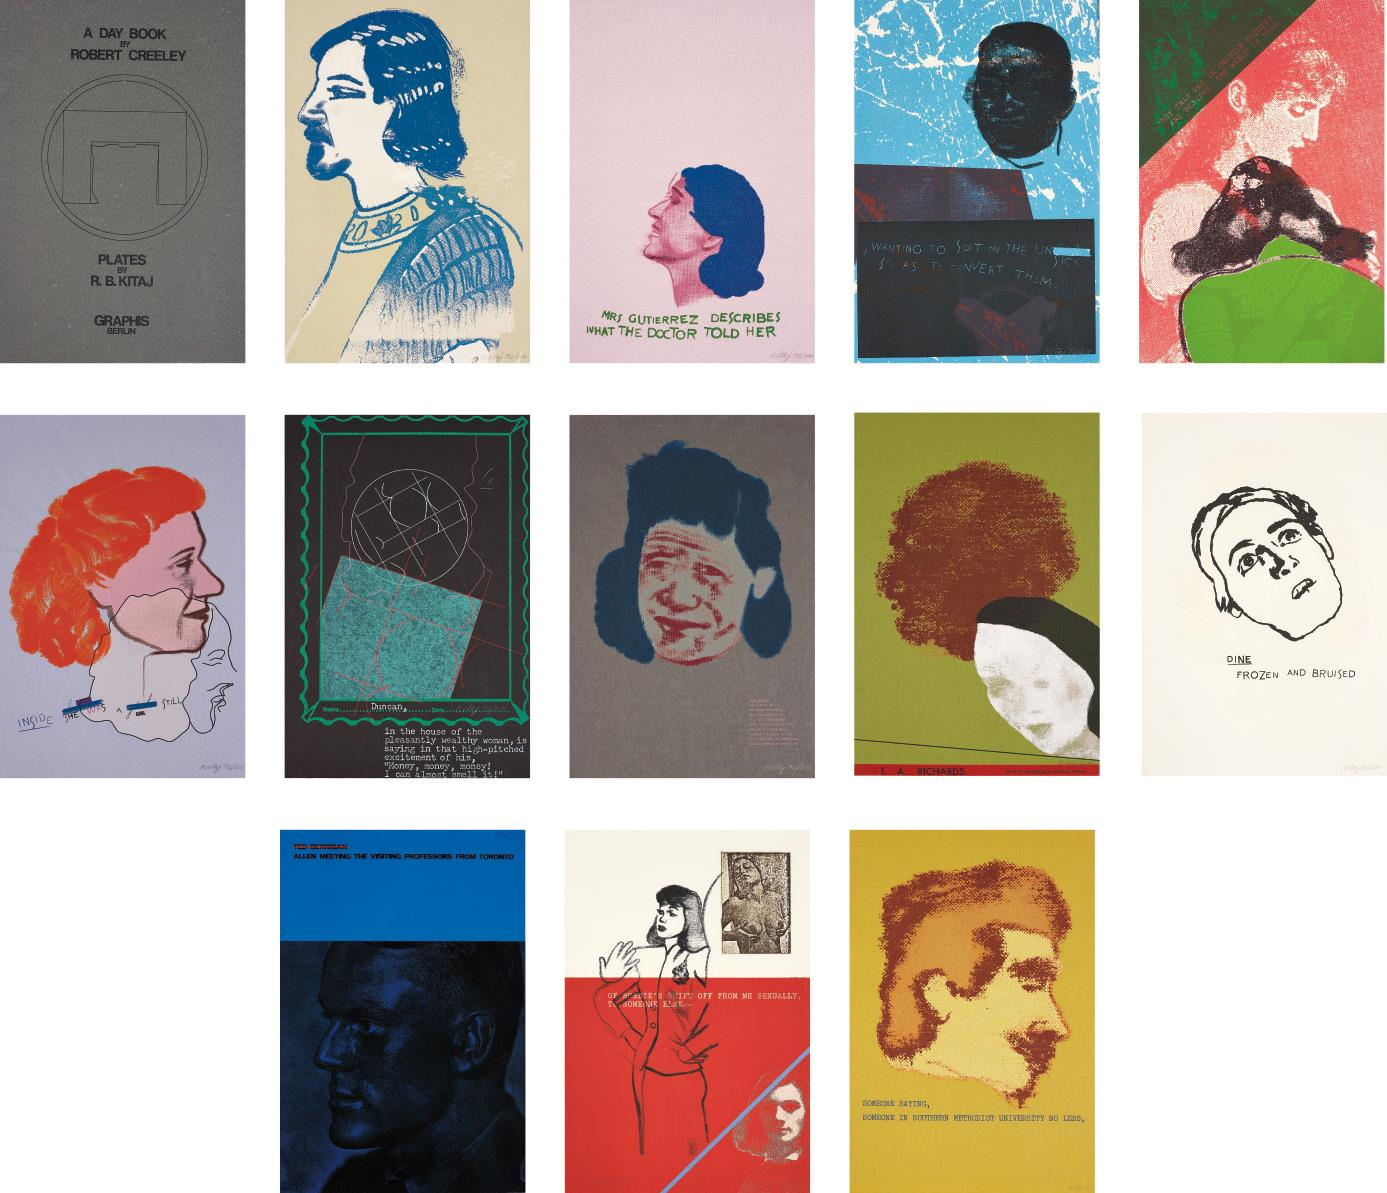 RB Kitaj-A Day Book by Robert Creeley; including two additional prints-1972